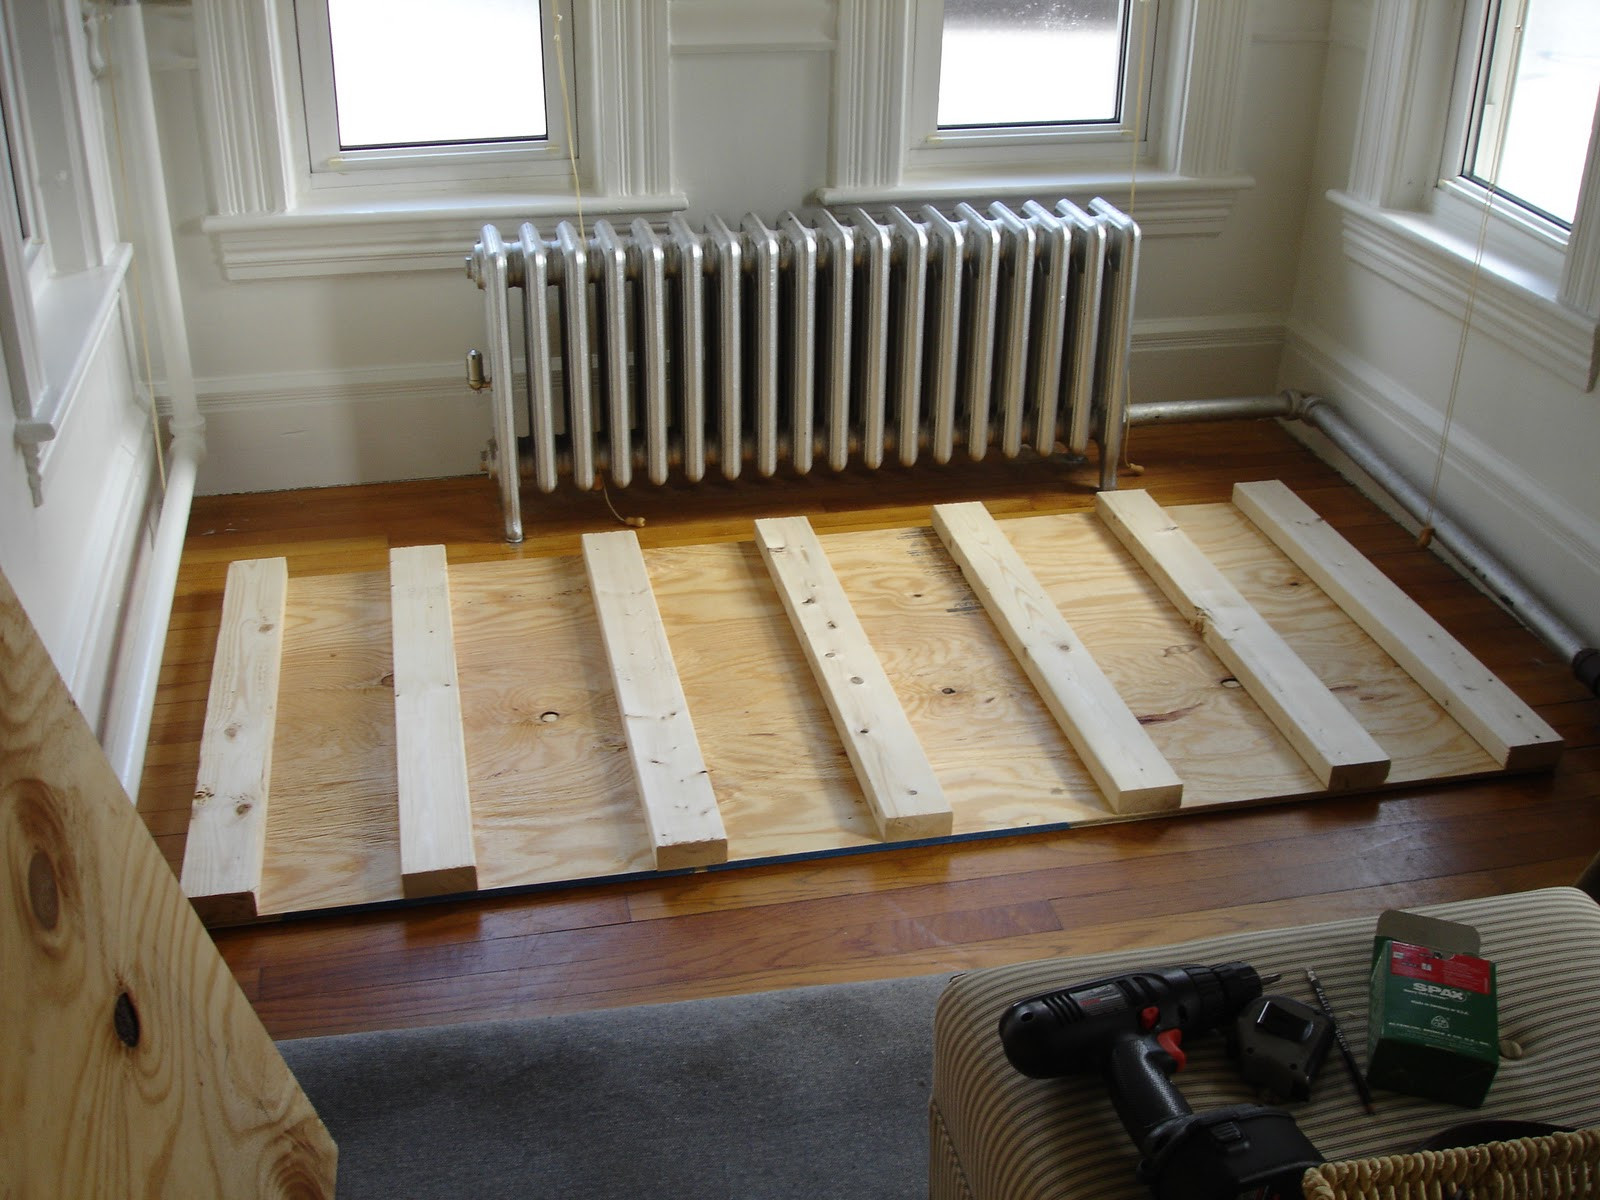 Best ideas about DIY Daybed Frame . Save or Pin loft & cottage the daybed is done Now.